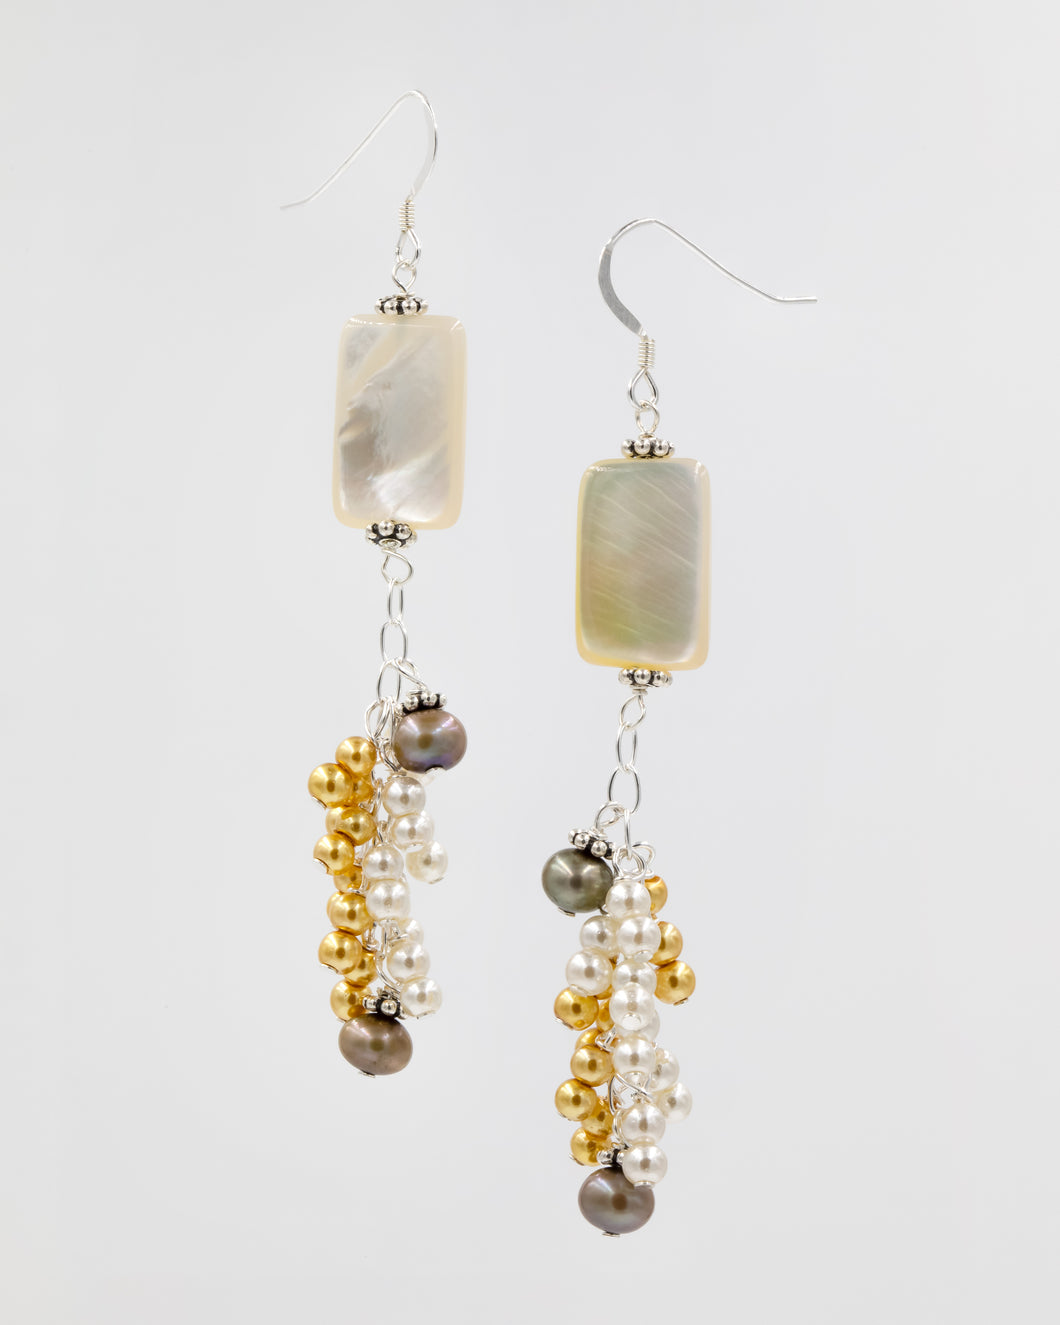 Picture of long earrings with Mother of Pearl, freshwater pearls, and imitation pearls